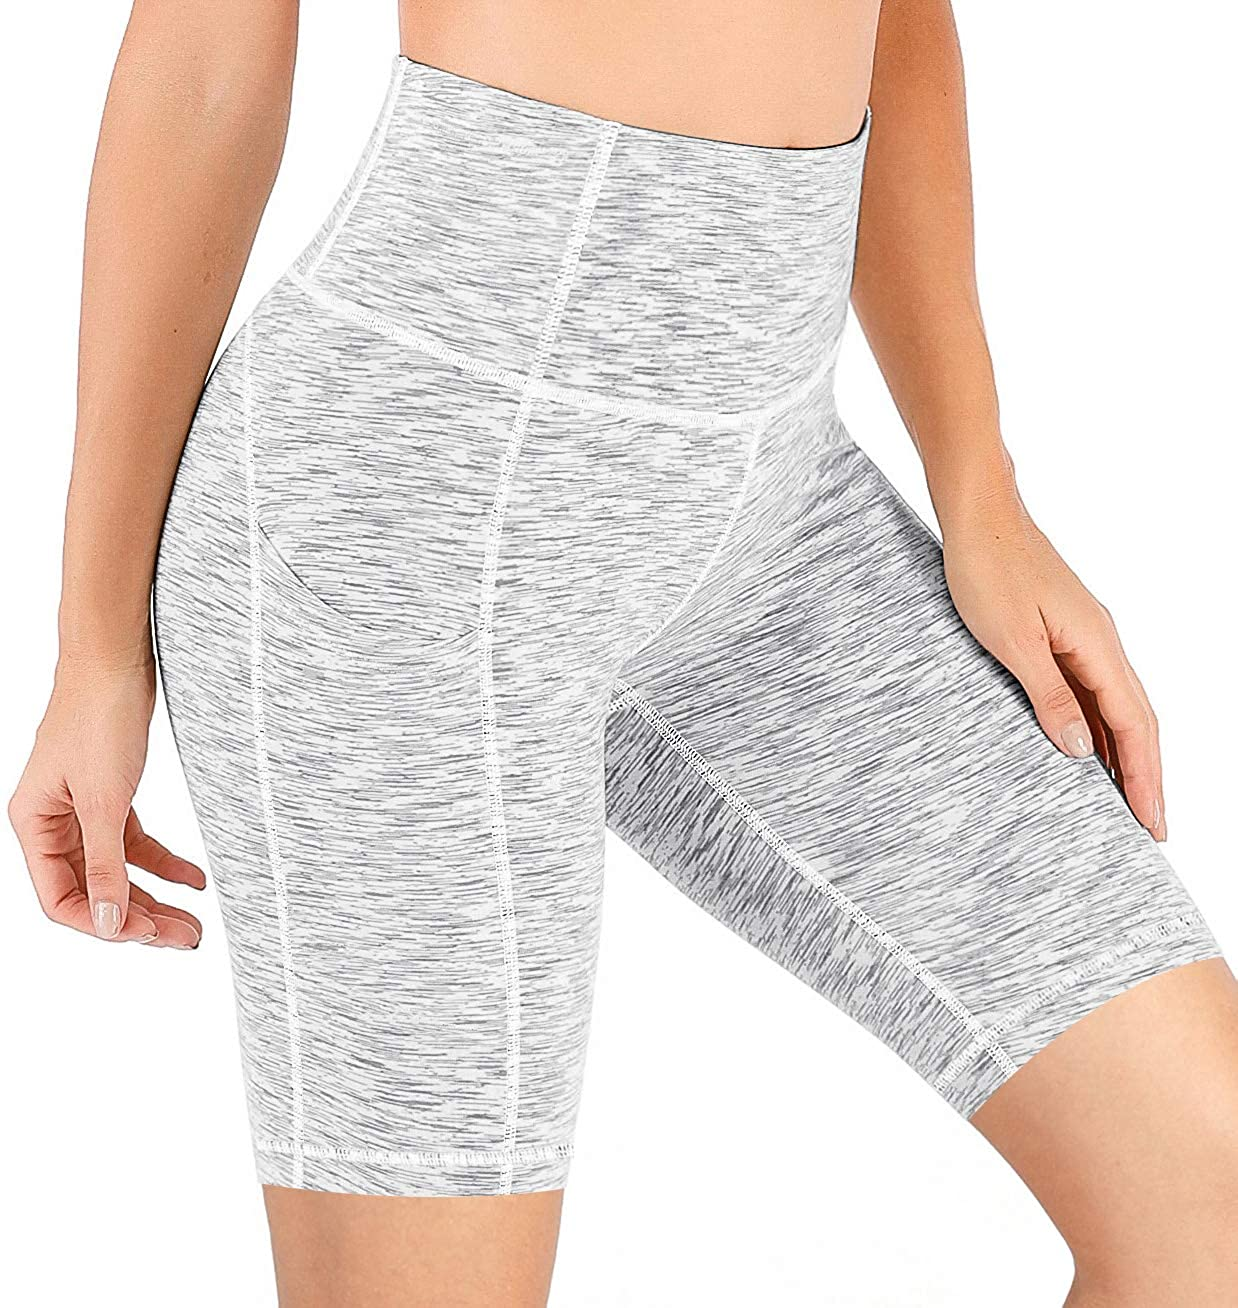 IUGA Workout Shorts for Women with Pockets 8//5 Biker Shorts for Women High Waisted Yoga Shorts Compression Running Shorts